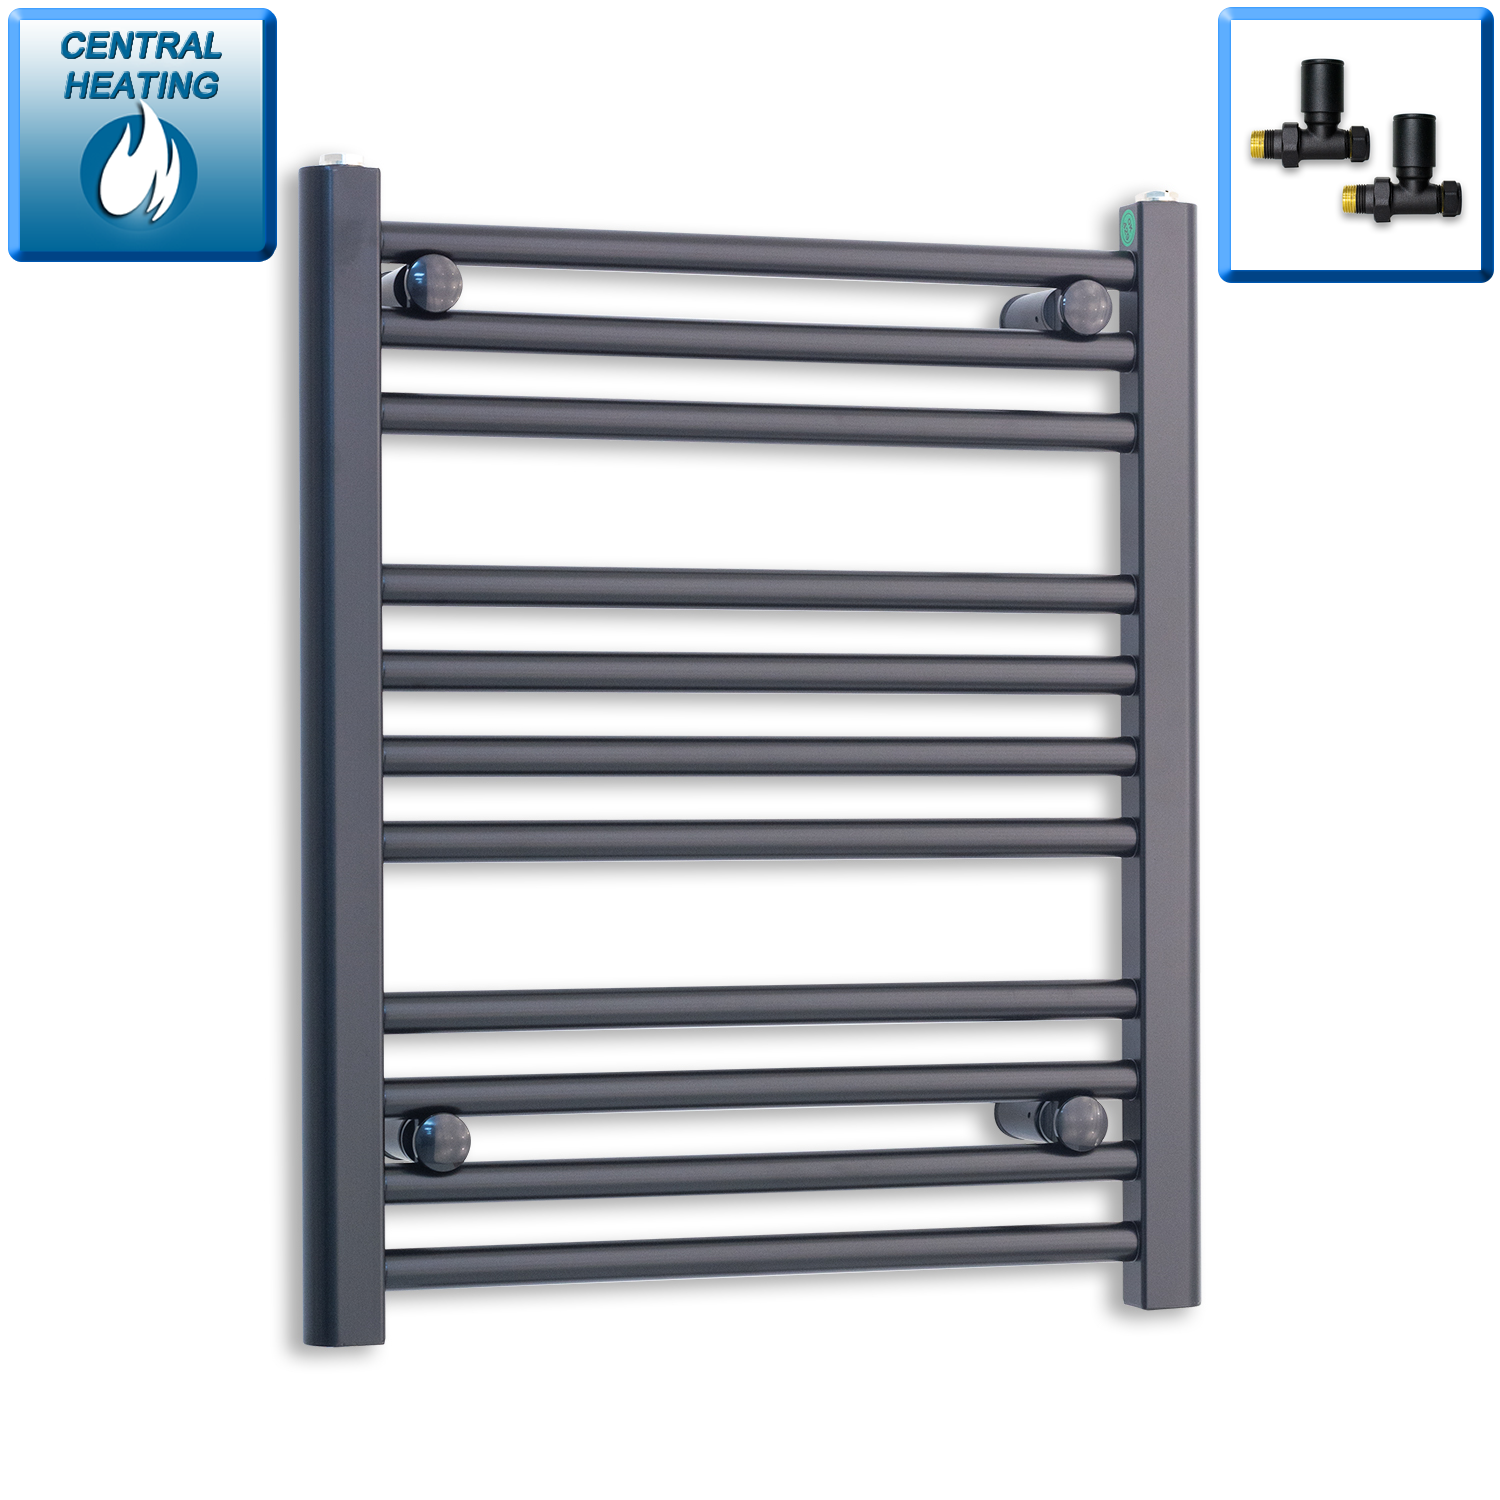 500mm Wide 600mm High Black Towel Rail Radiator With Straight Valve